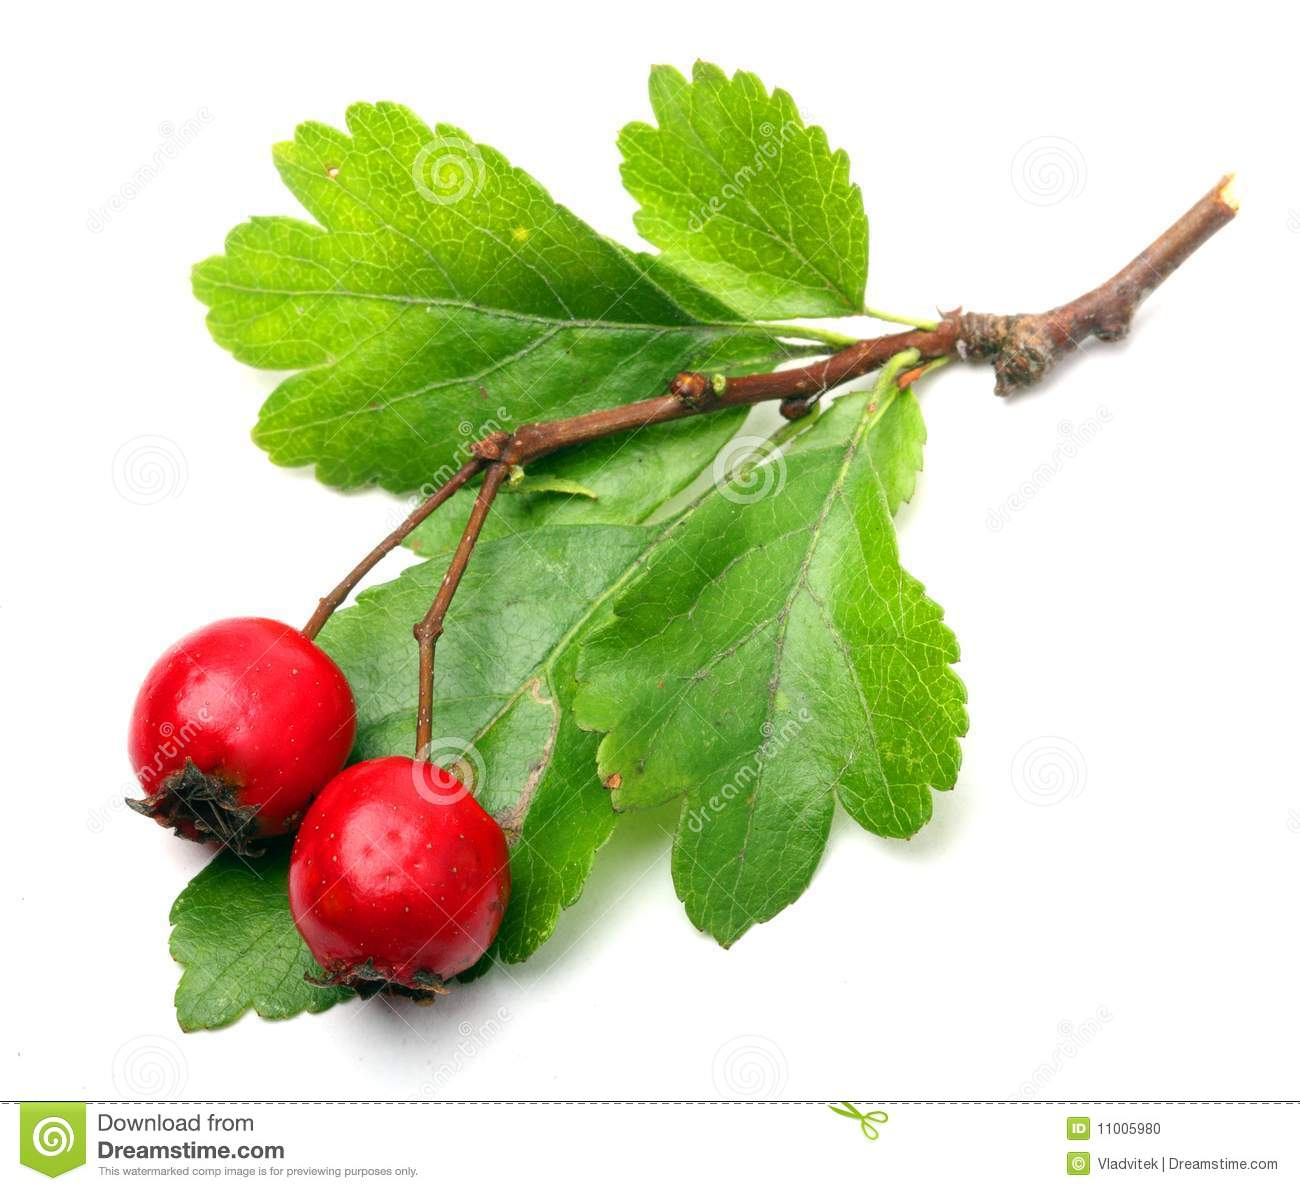 Crataegus oxyacantha - Hawthorn. The total complex of plant ...